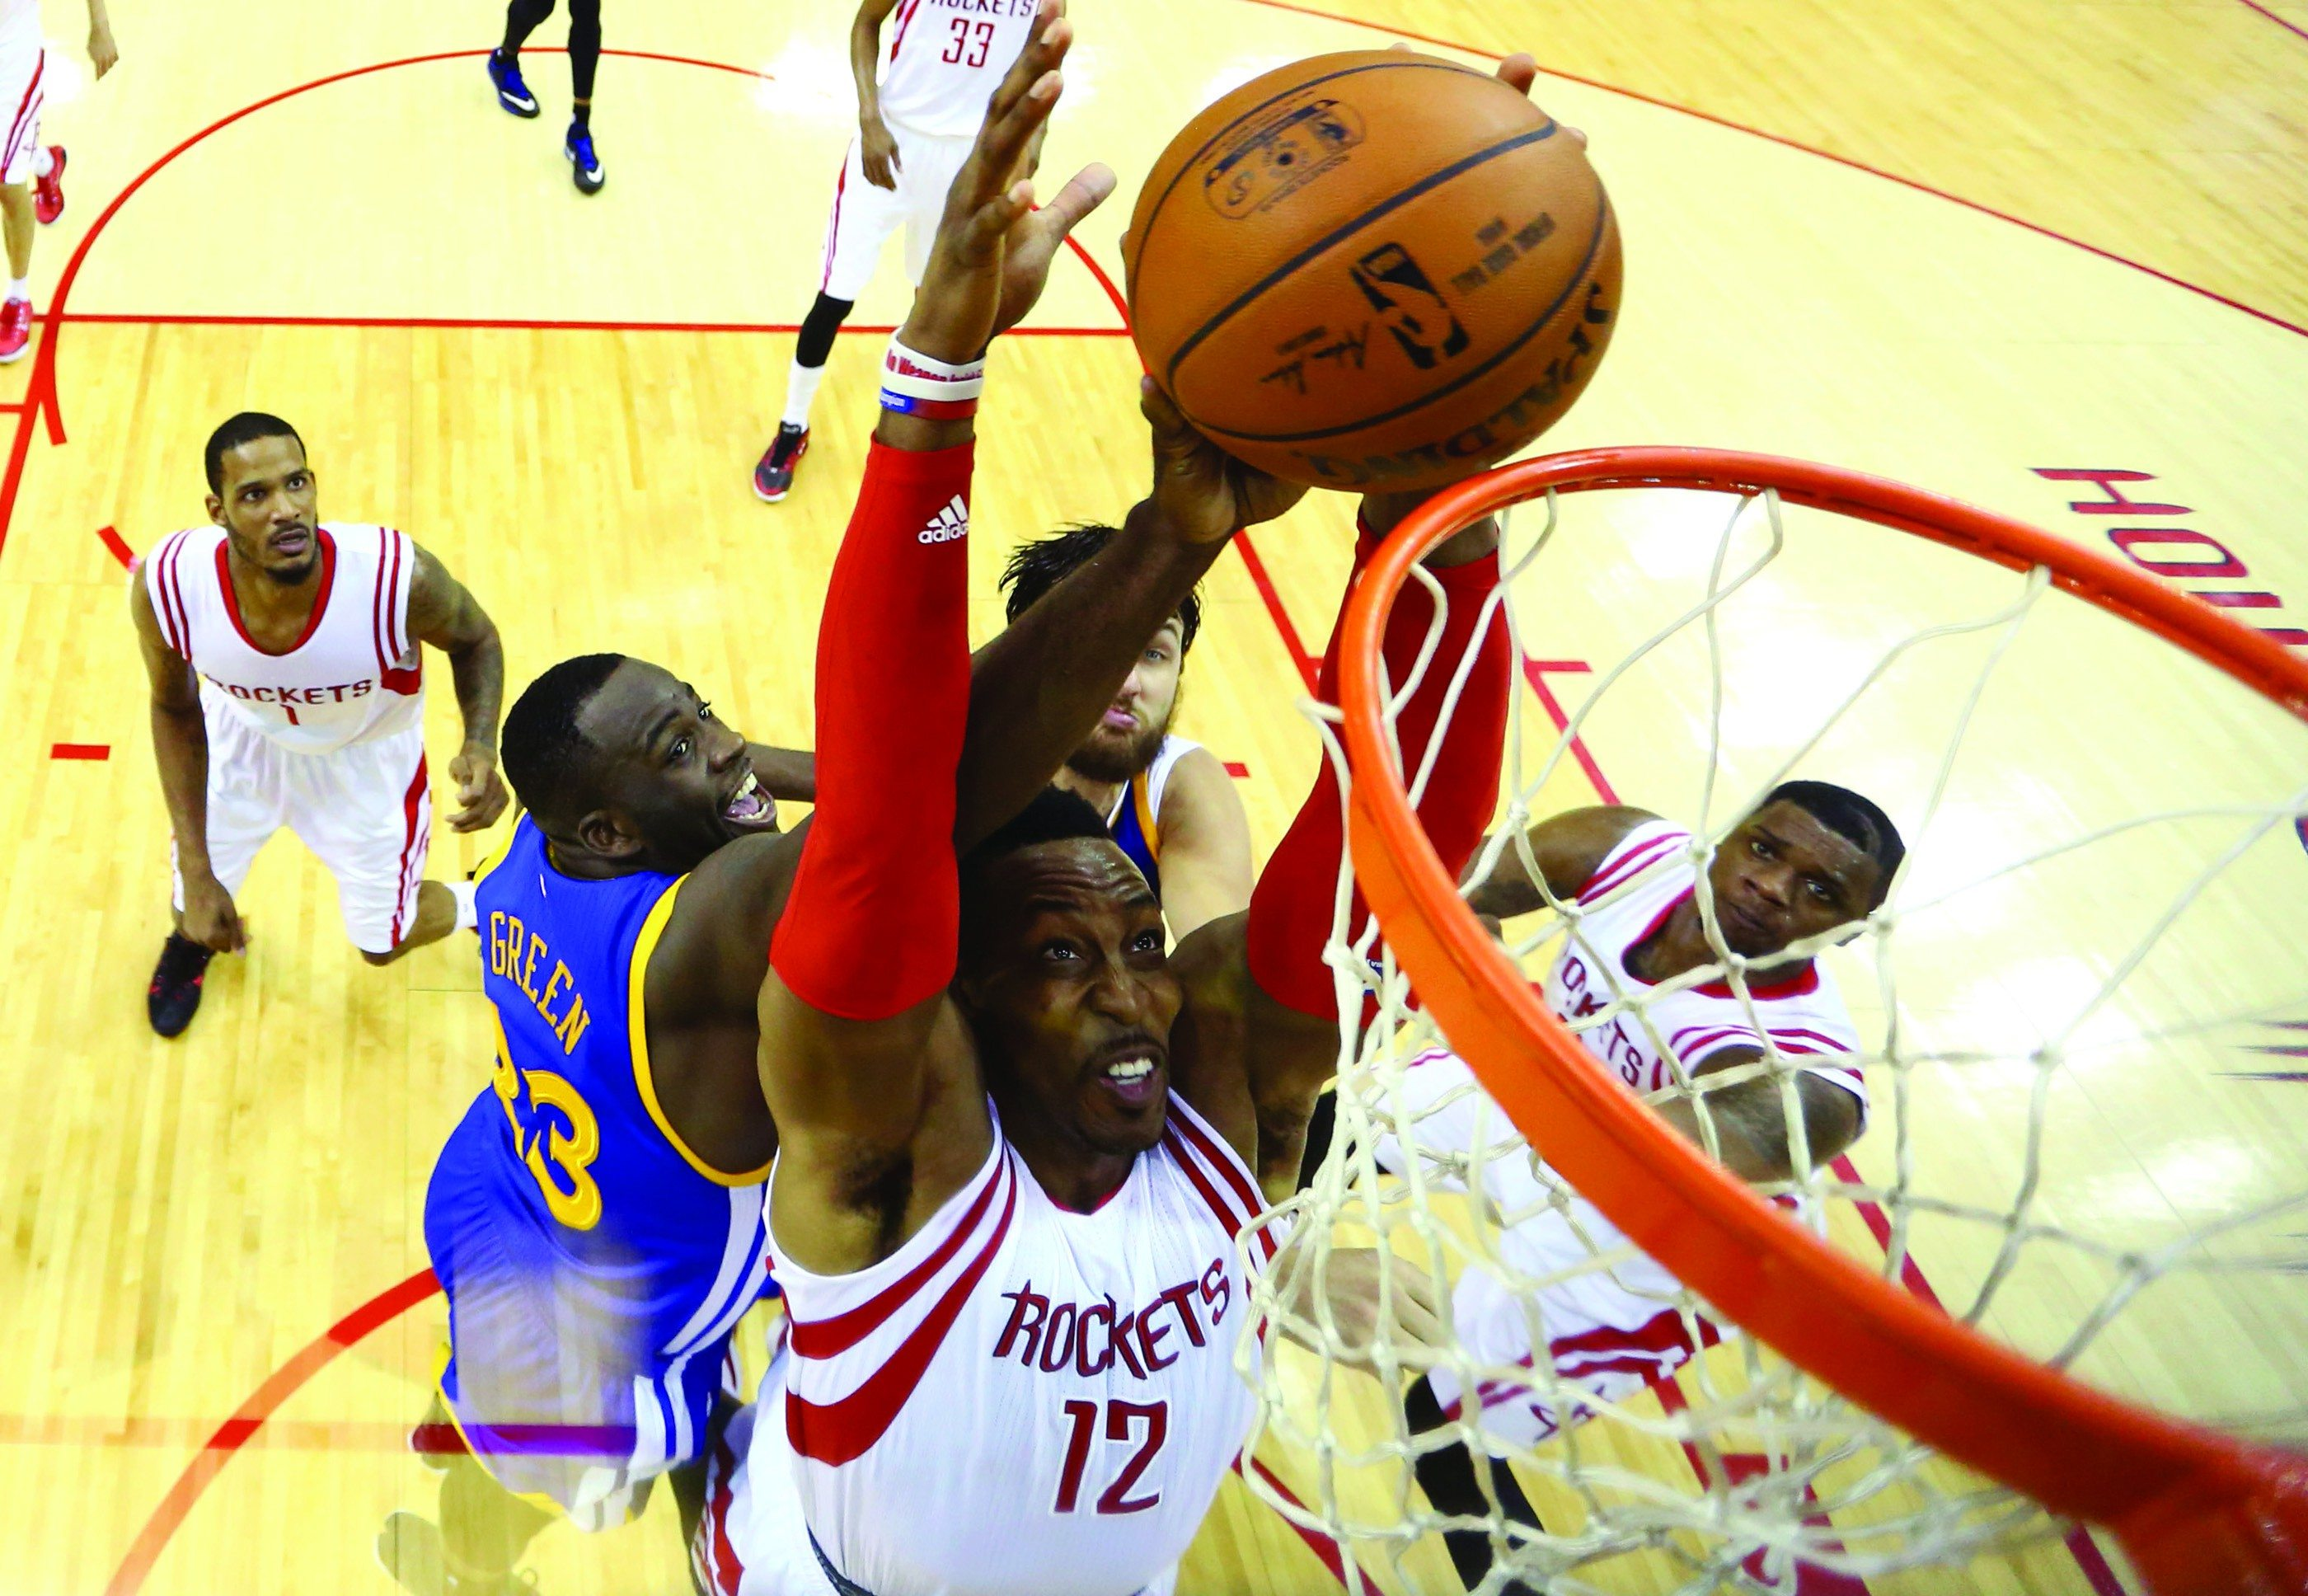 Ronald Martinez/APThe physical play of Houston Rockets center Dwight Howard (12) has presented some trouble for the Warriors